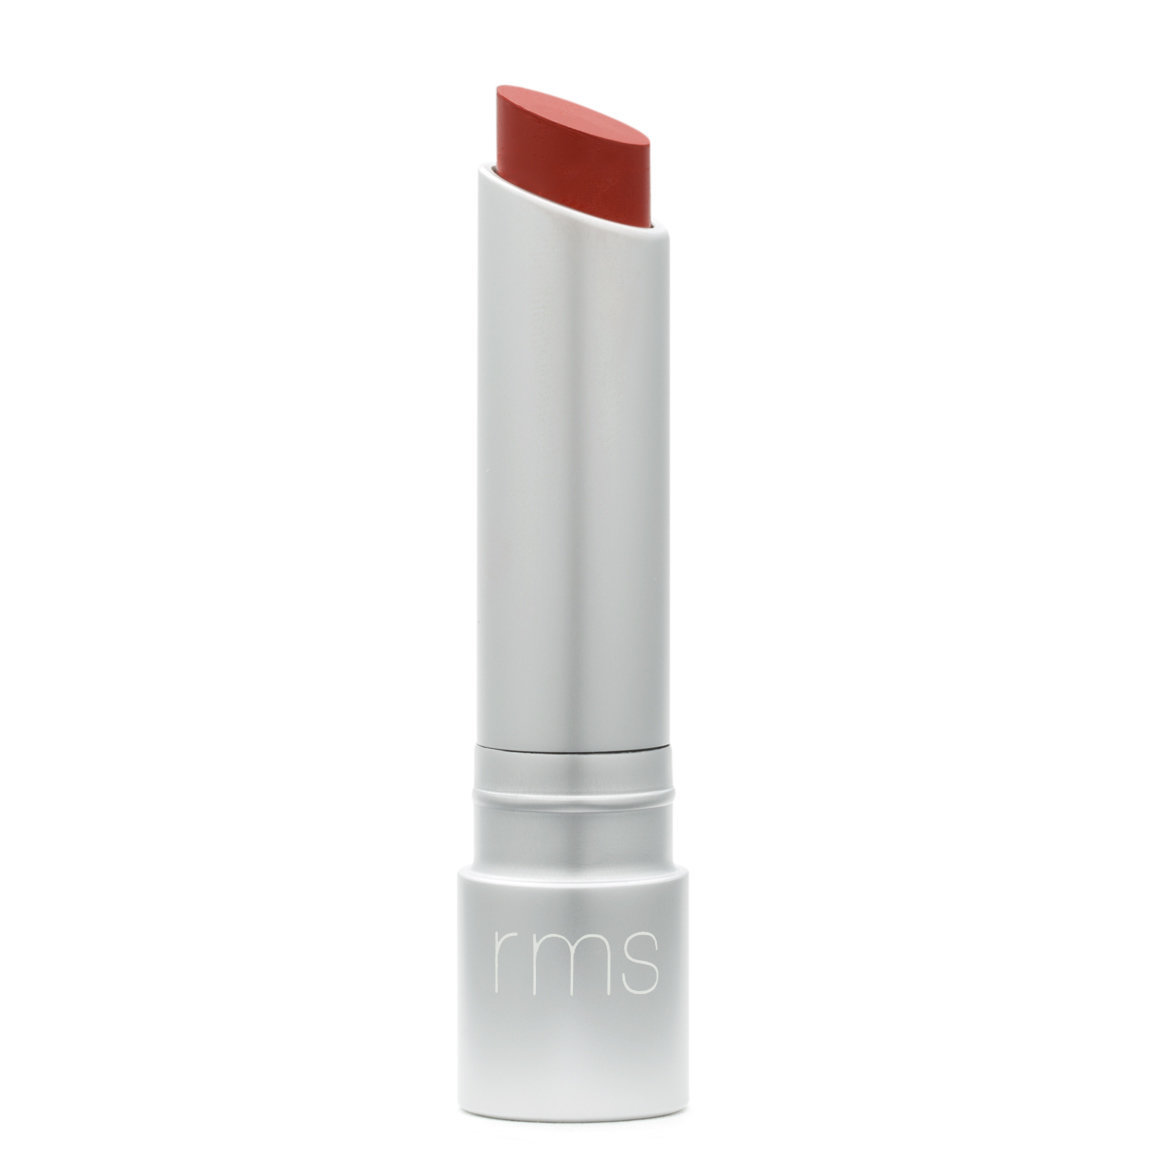 rms beauty Wild With Desire Lipstick Rapture